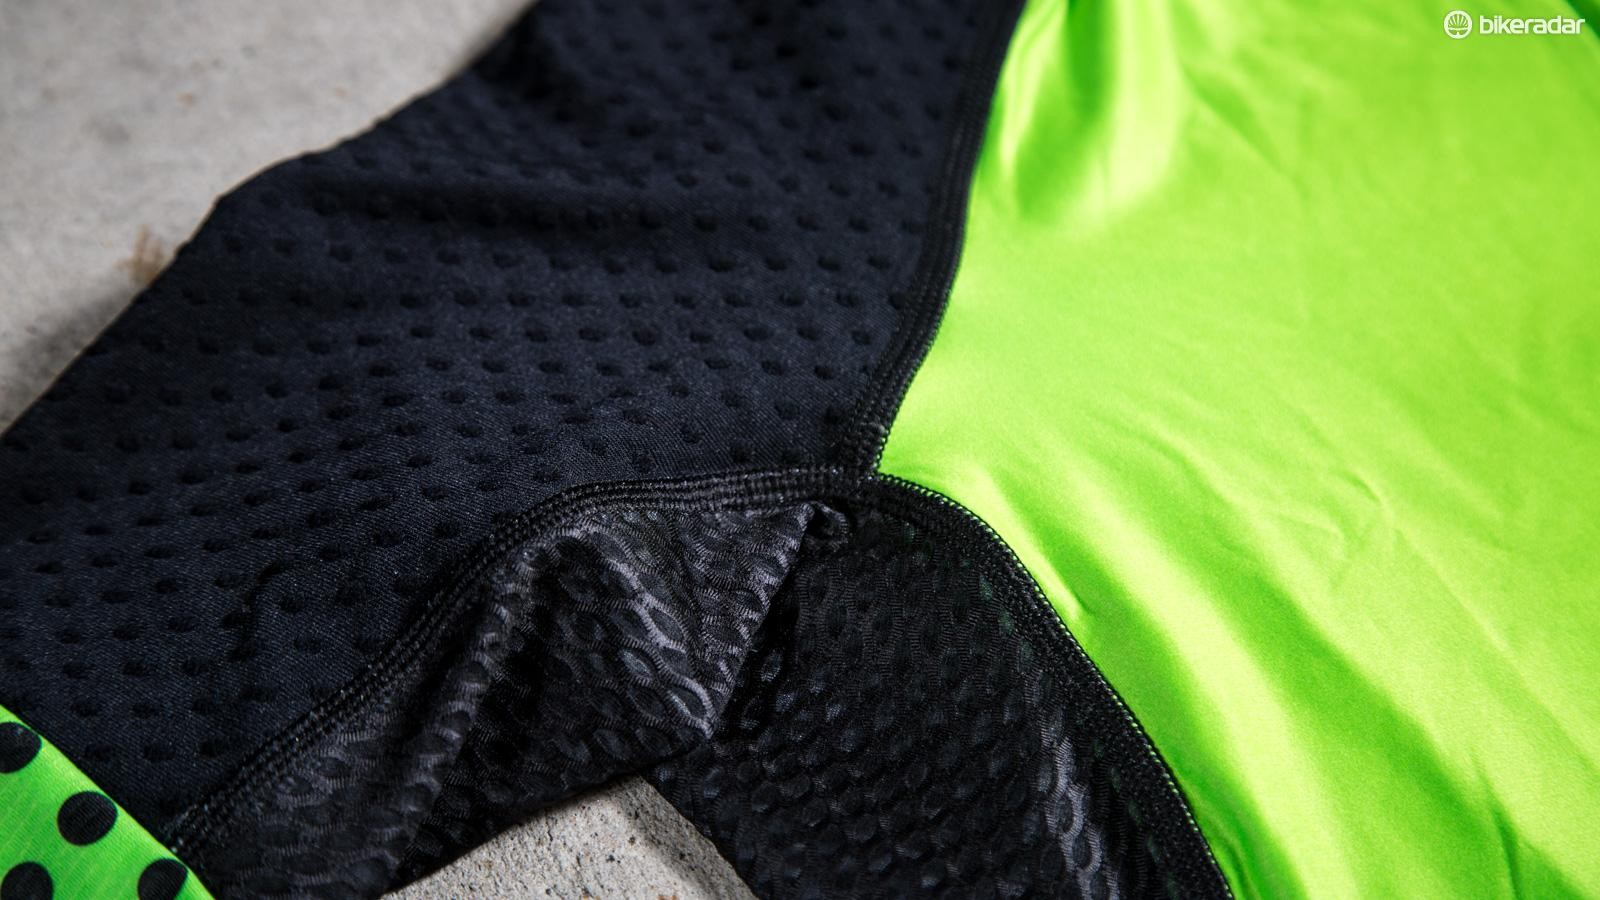 The jersey also gets the dimpled fabric and Elv^8 says its kits offer between two and six percent aero advantage